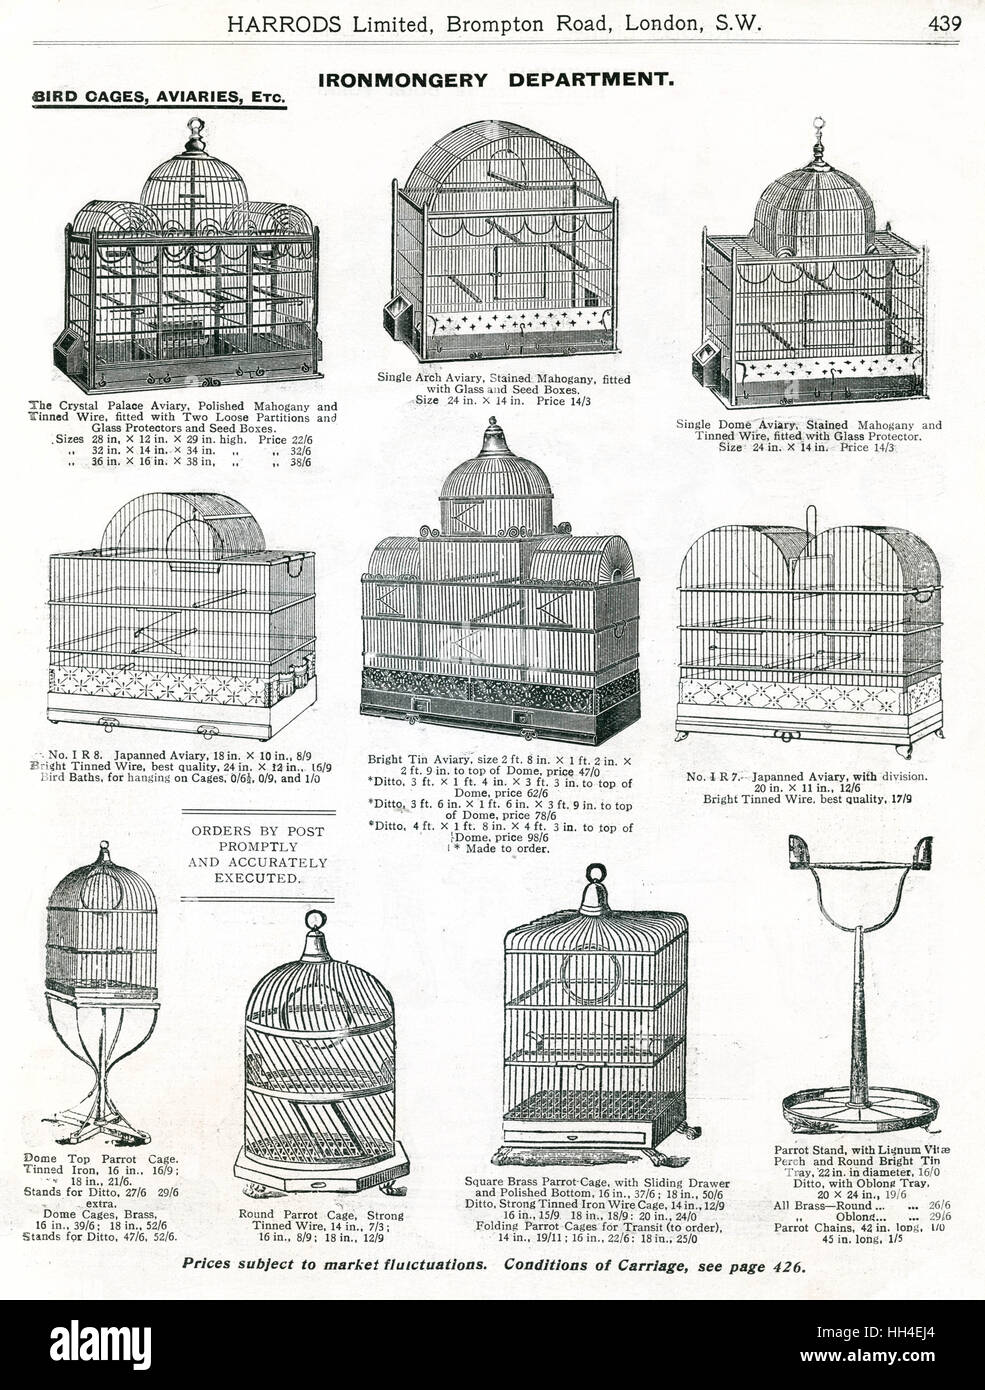 Trade catalogue for Harrord's department store, showing a variety of  decorative larger bird cages